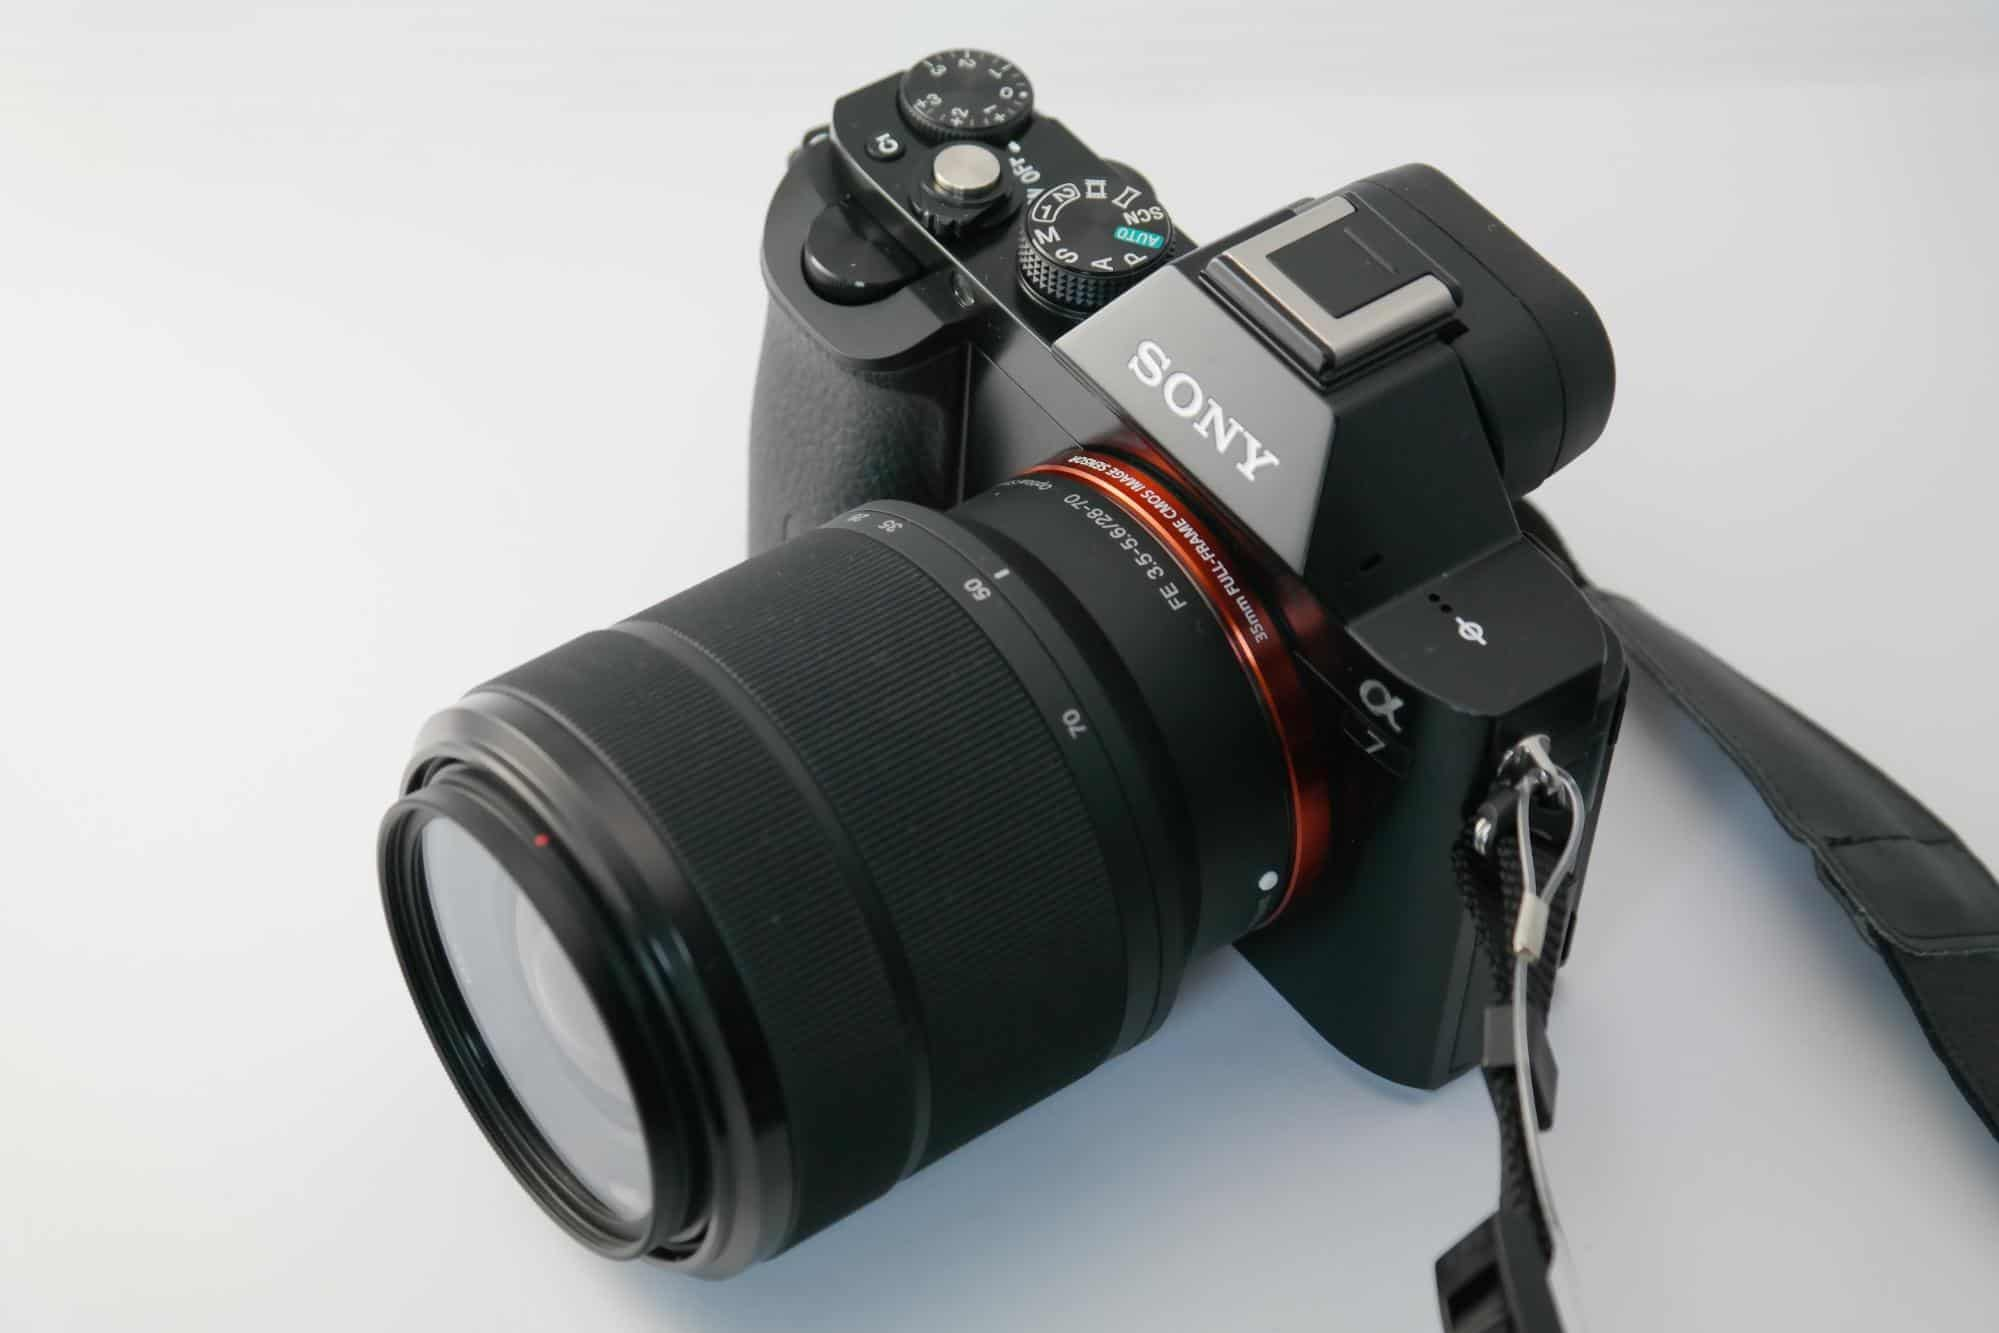 sony alpha mirrorless for astrophotography